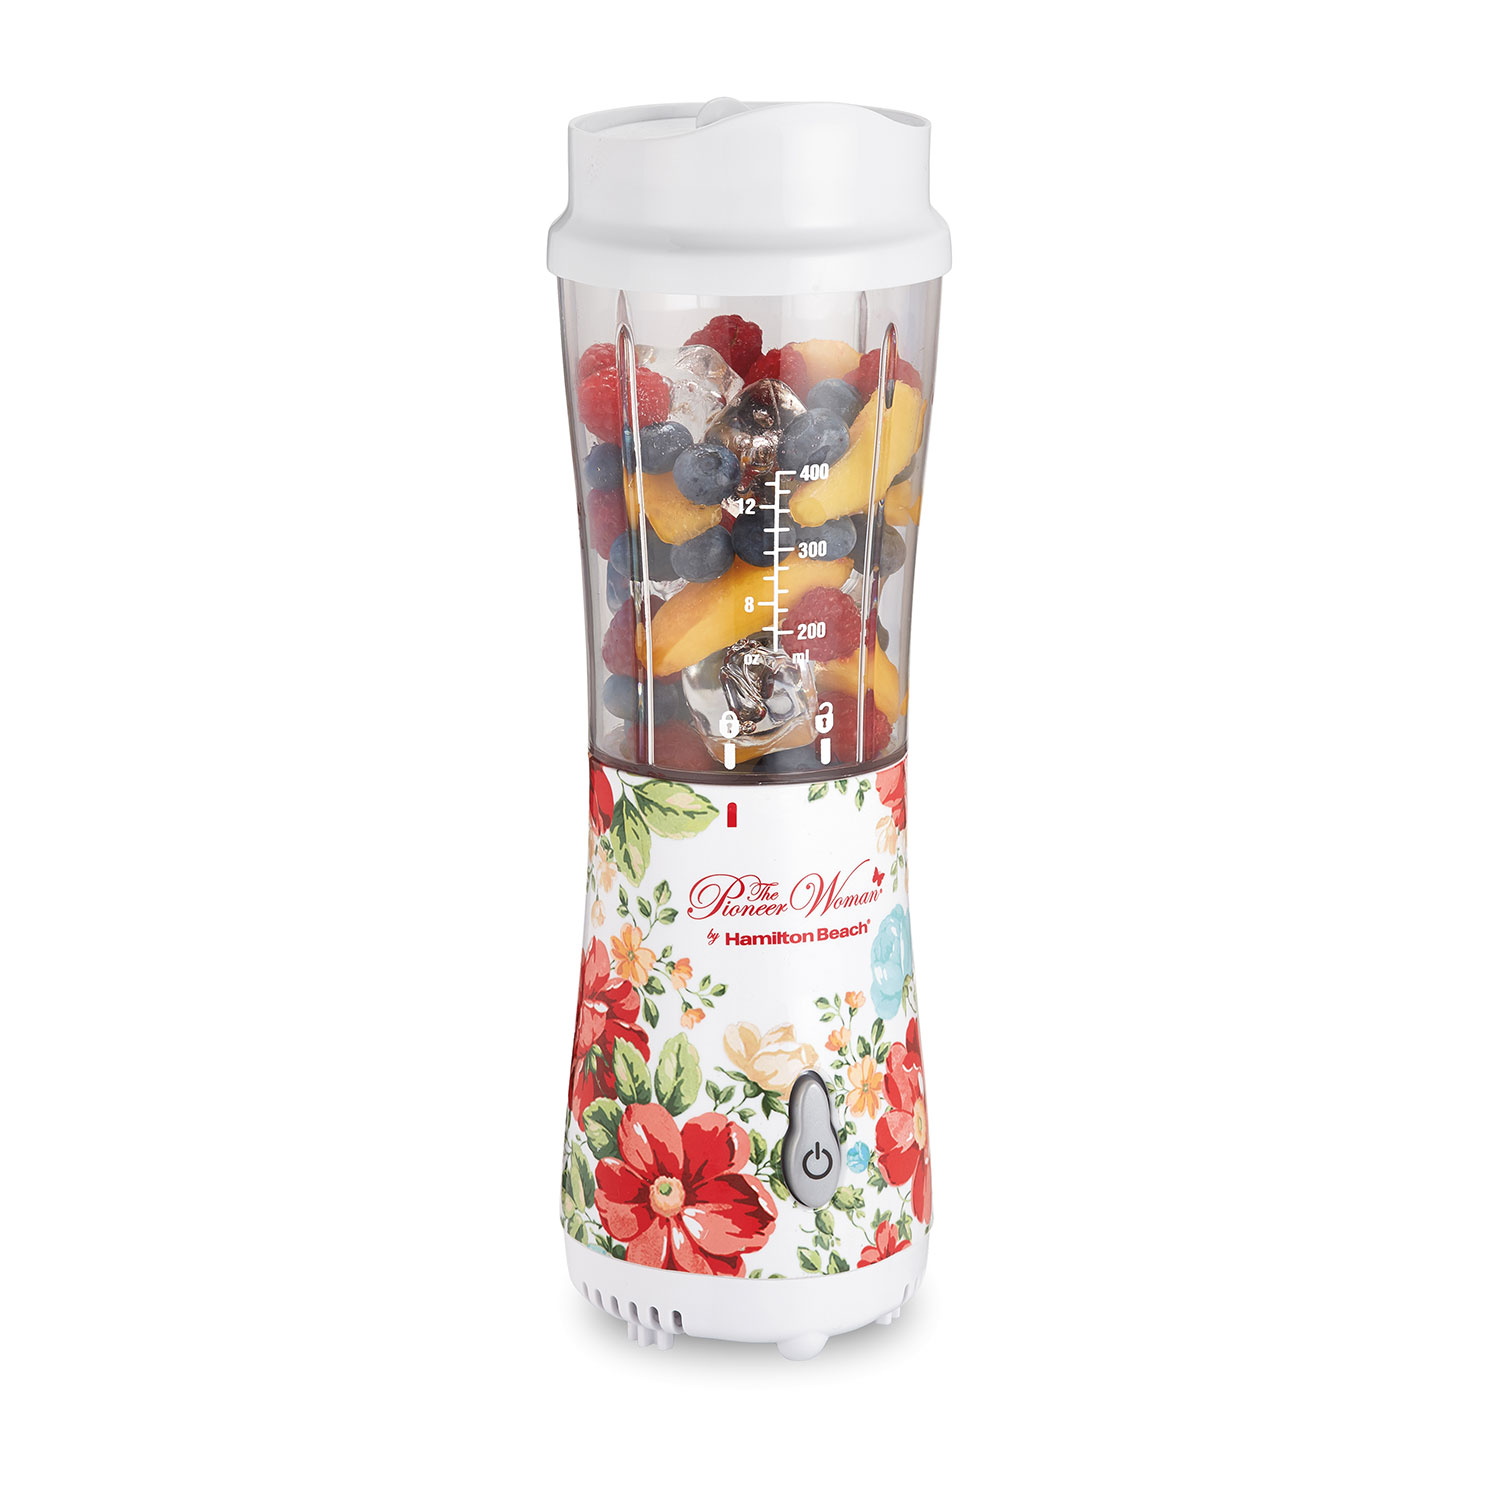 The Pioneer Woman Vintage Floral Personal Blender with Travel Lid by Hamilton Beach (51170)